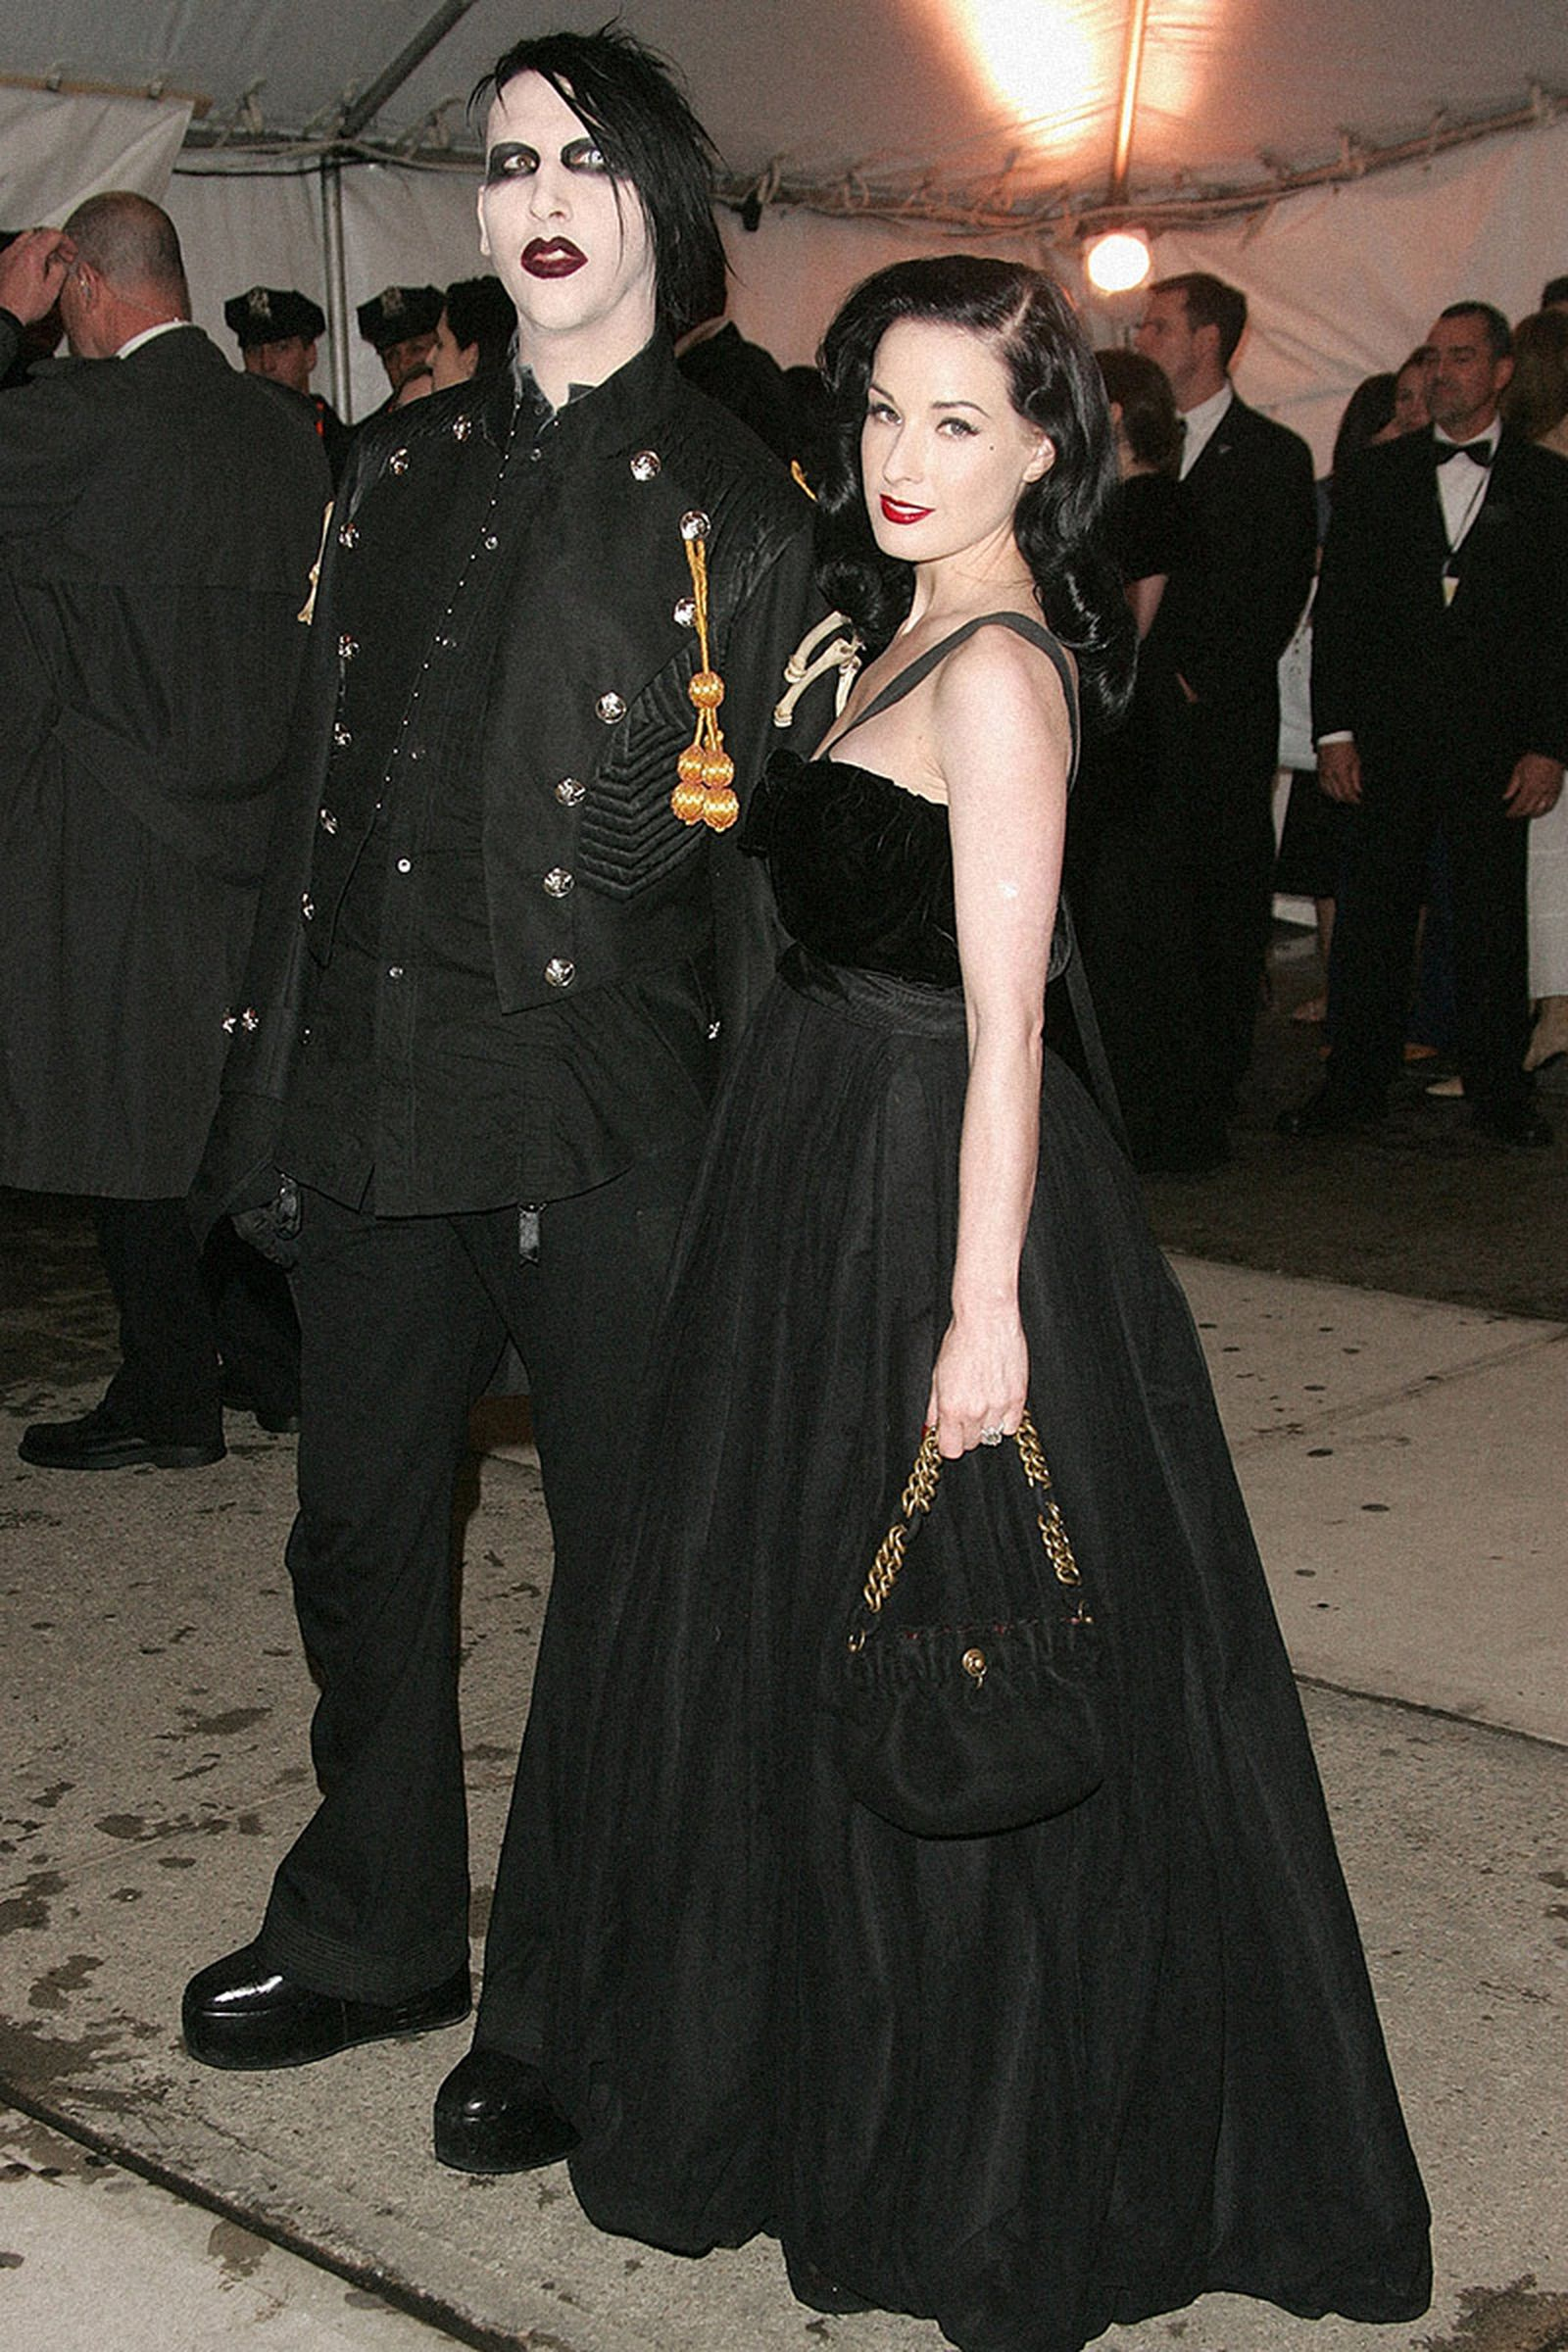 met-gala-mw-moments-02